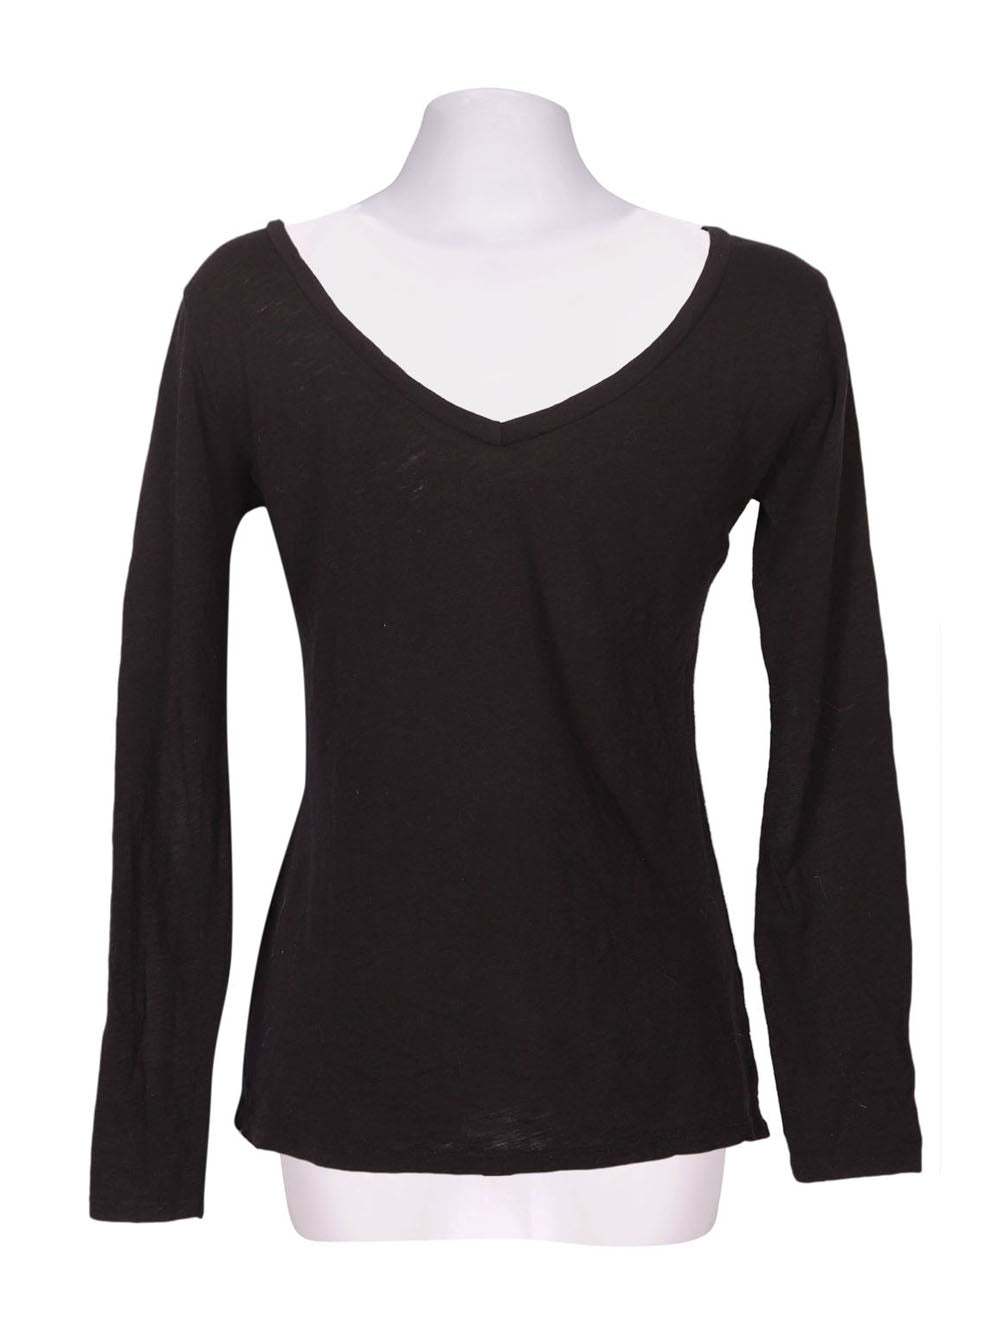 Back photo of Preloved RIANDA Black Woman's long sleeved shirt - size 8/S